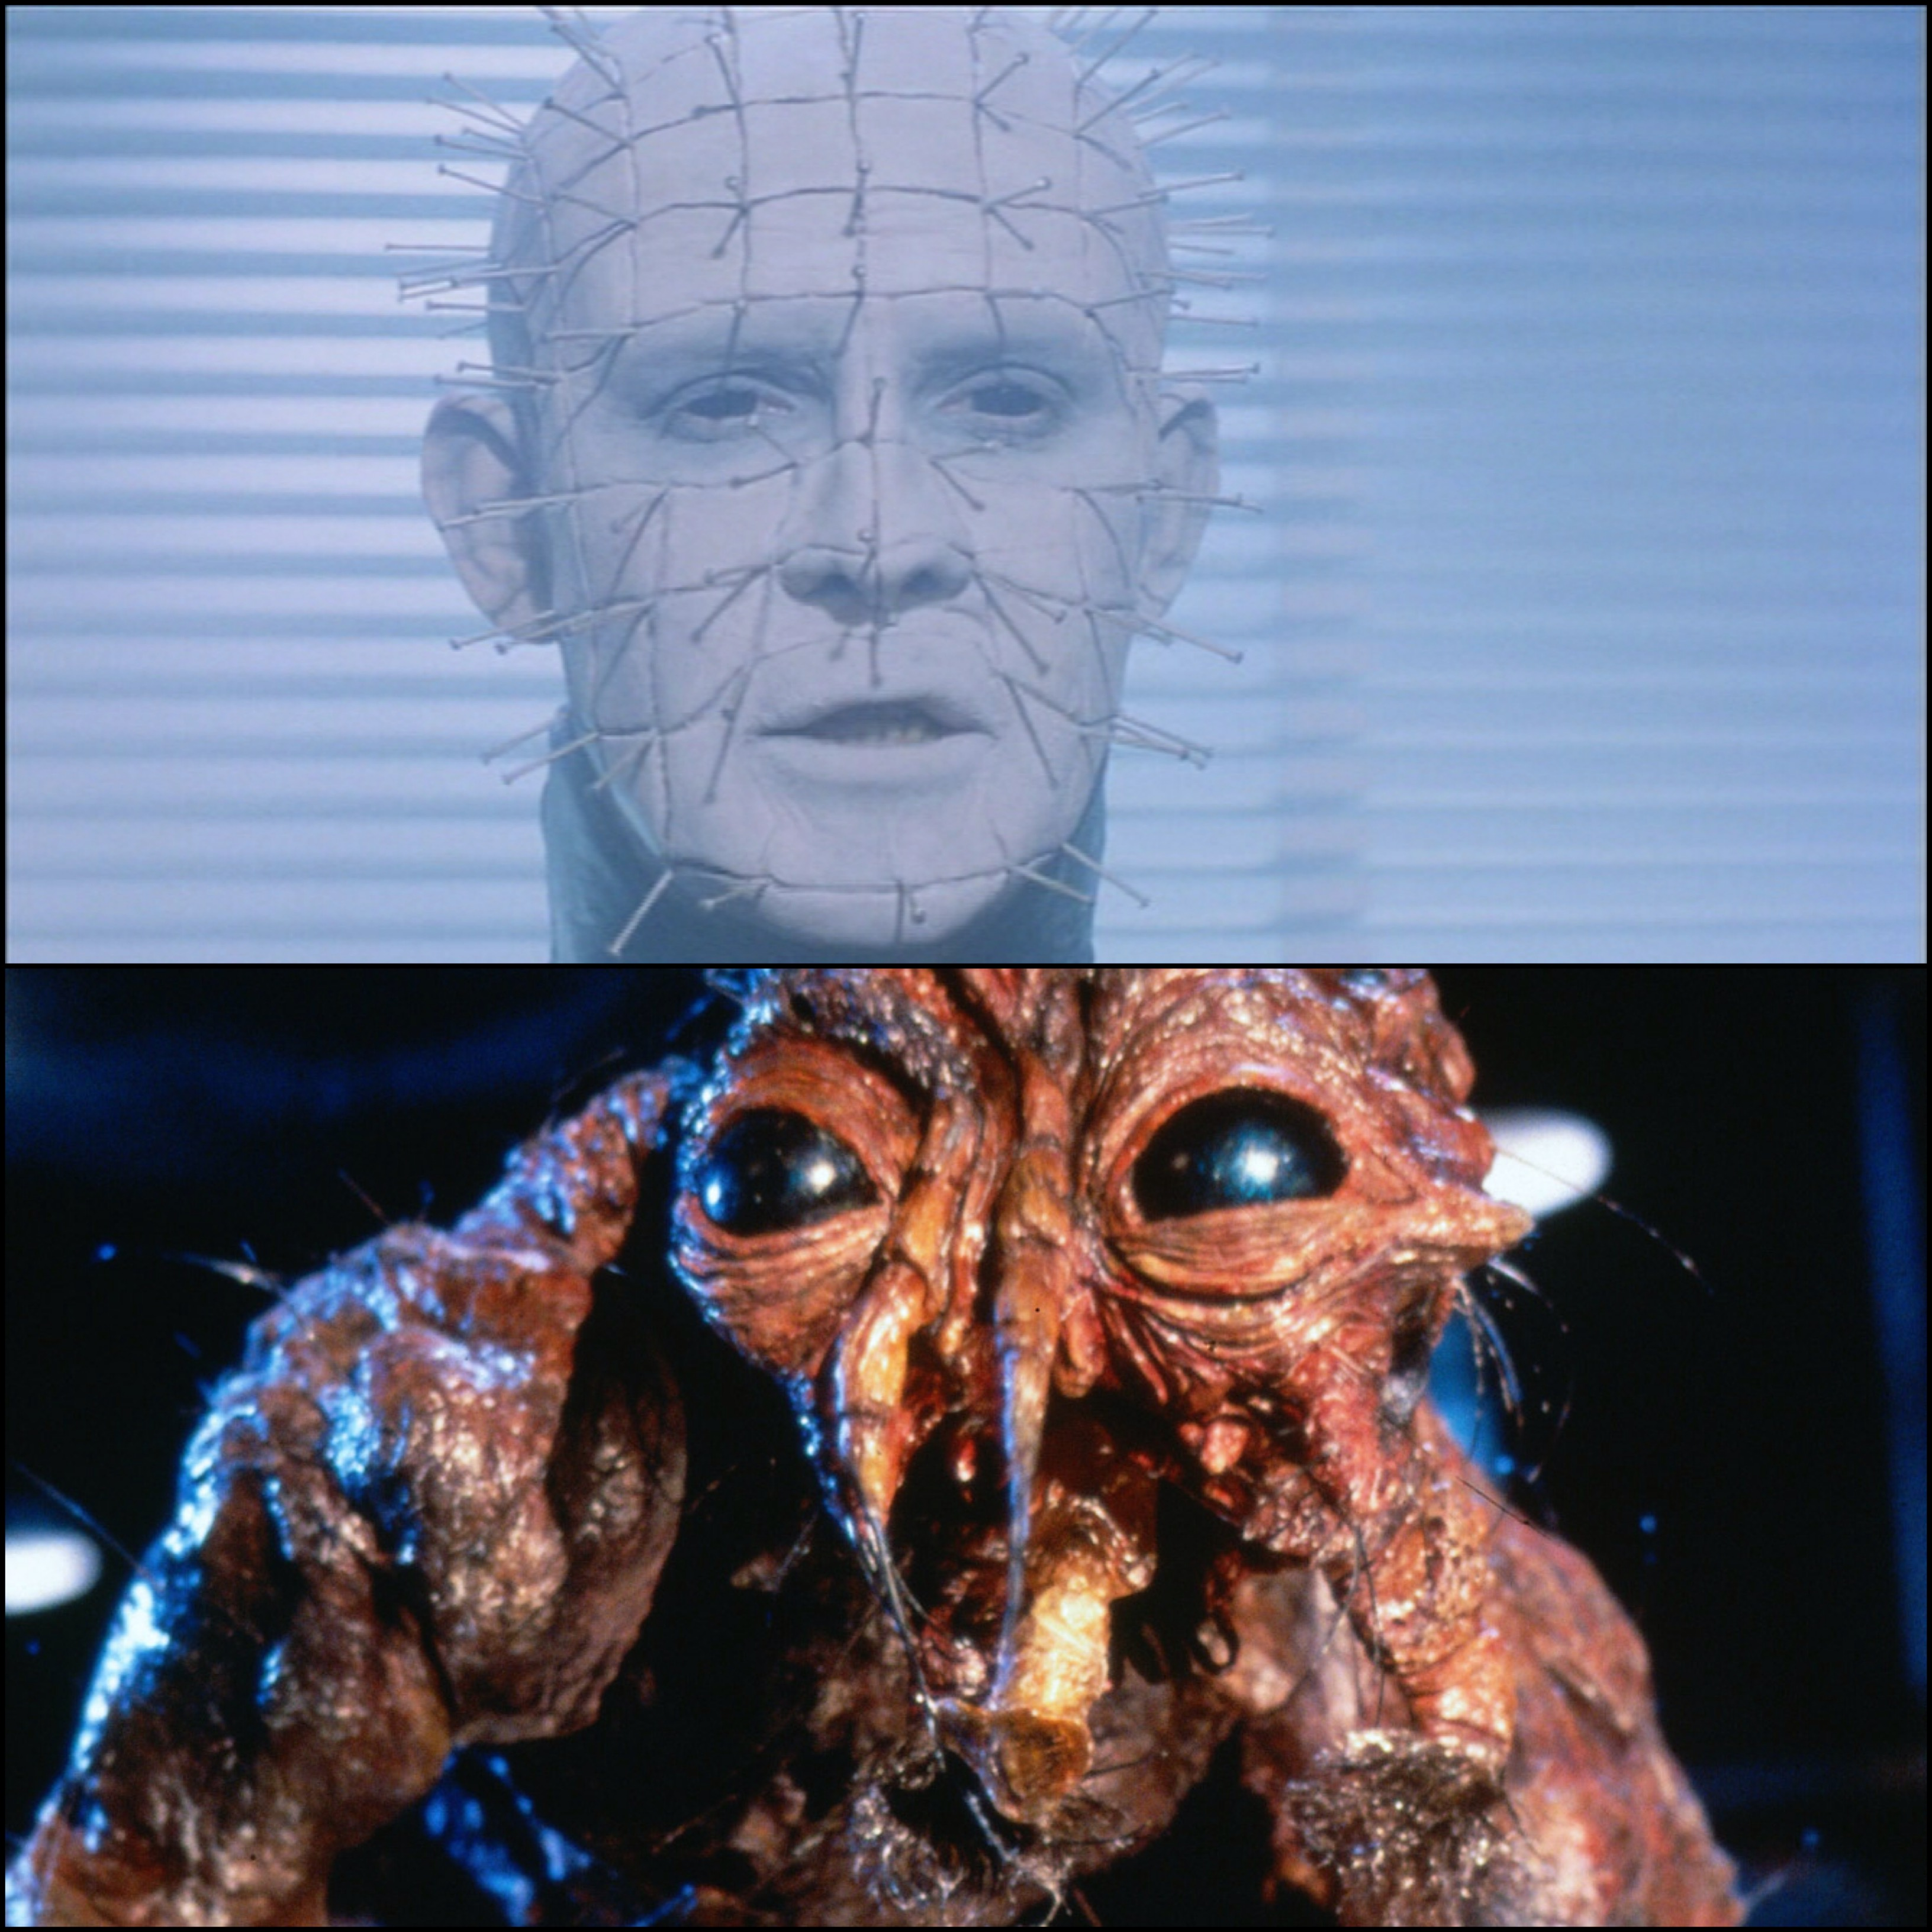 80's Body Horror – The Fly and Hellraiser